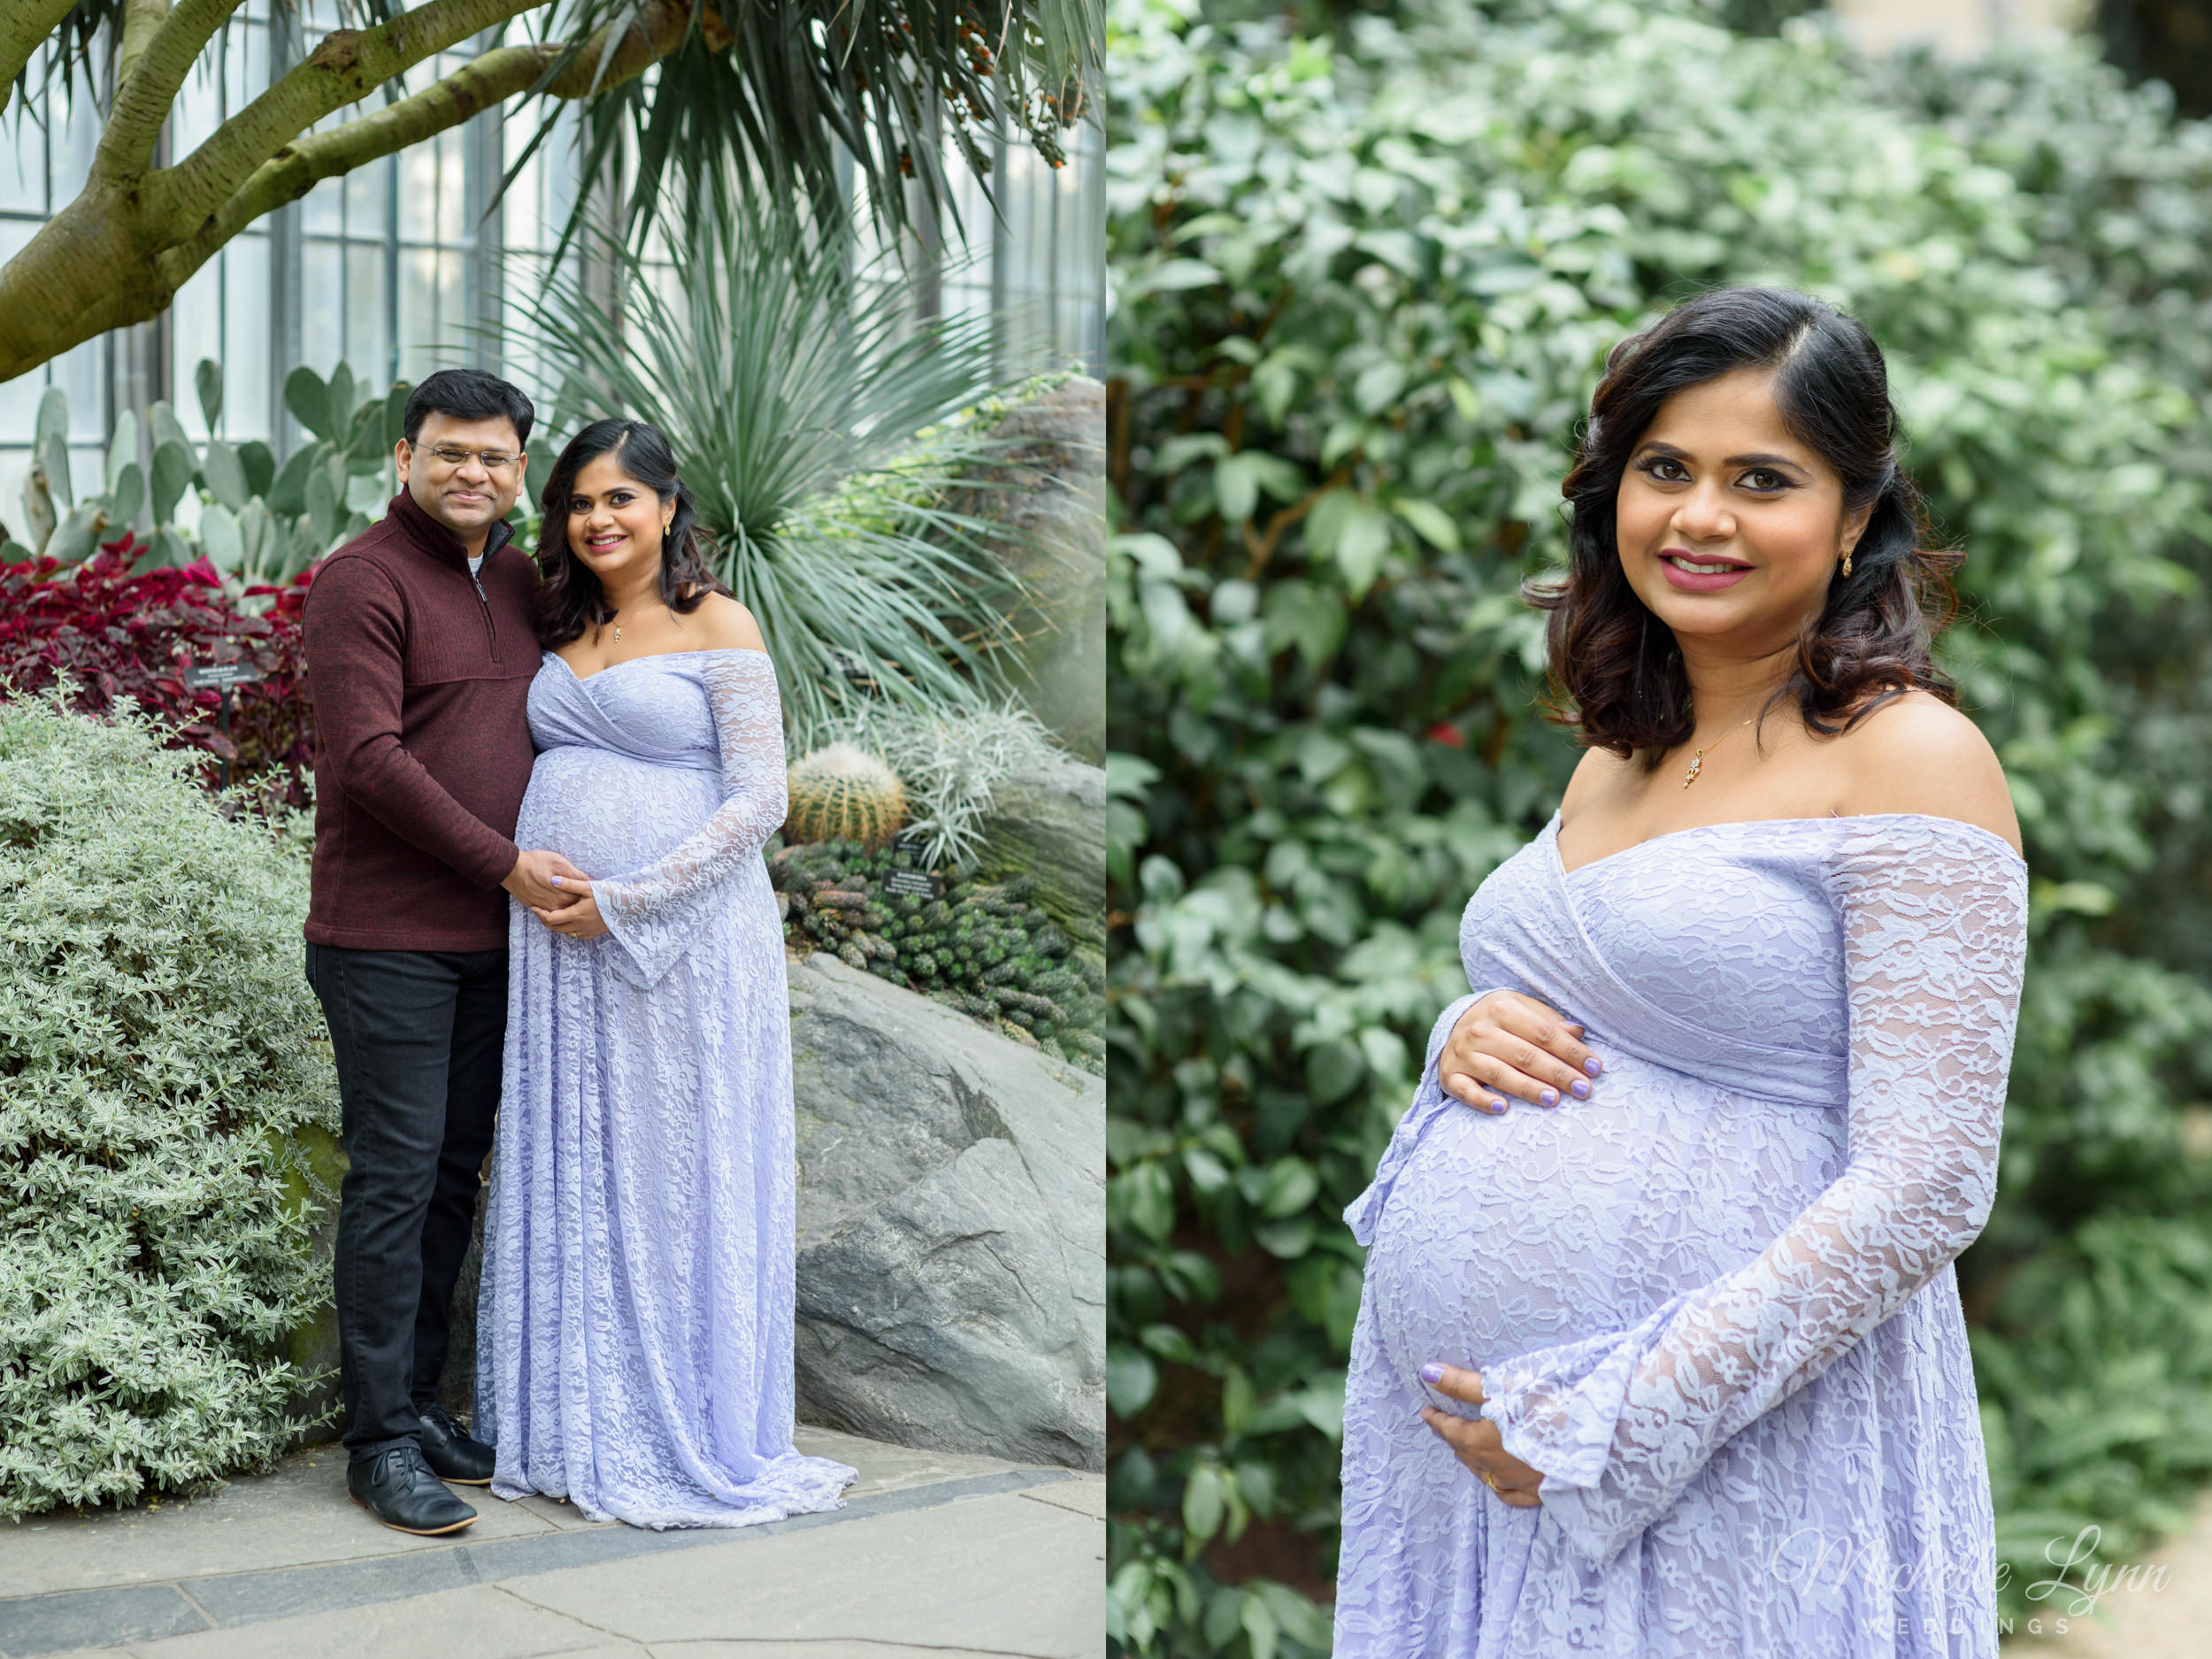 mlw-longwood-gardens-maternity-photos-15.jpg